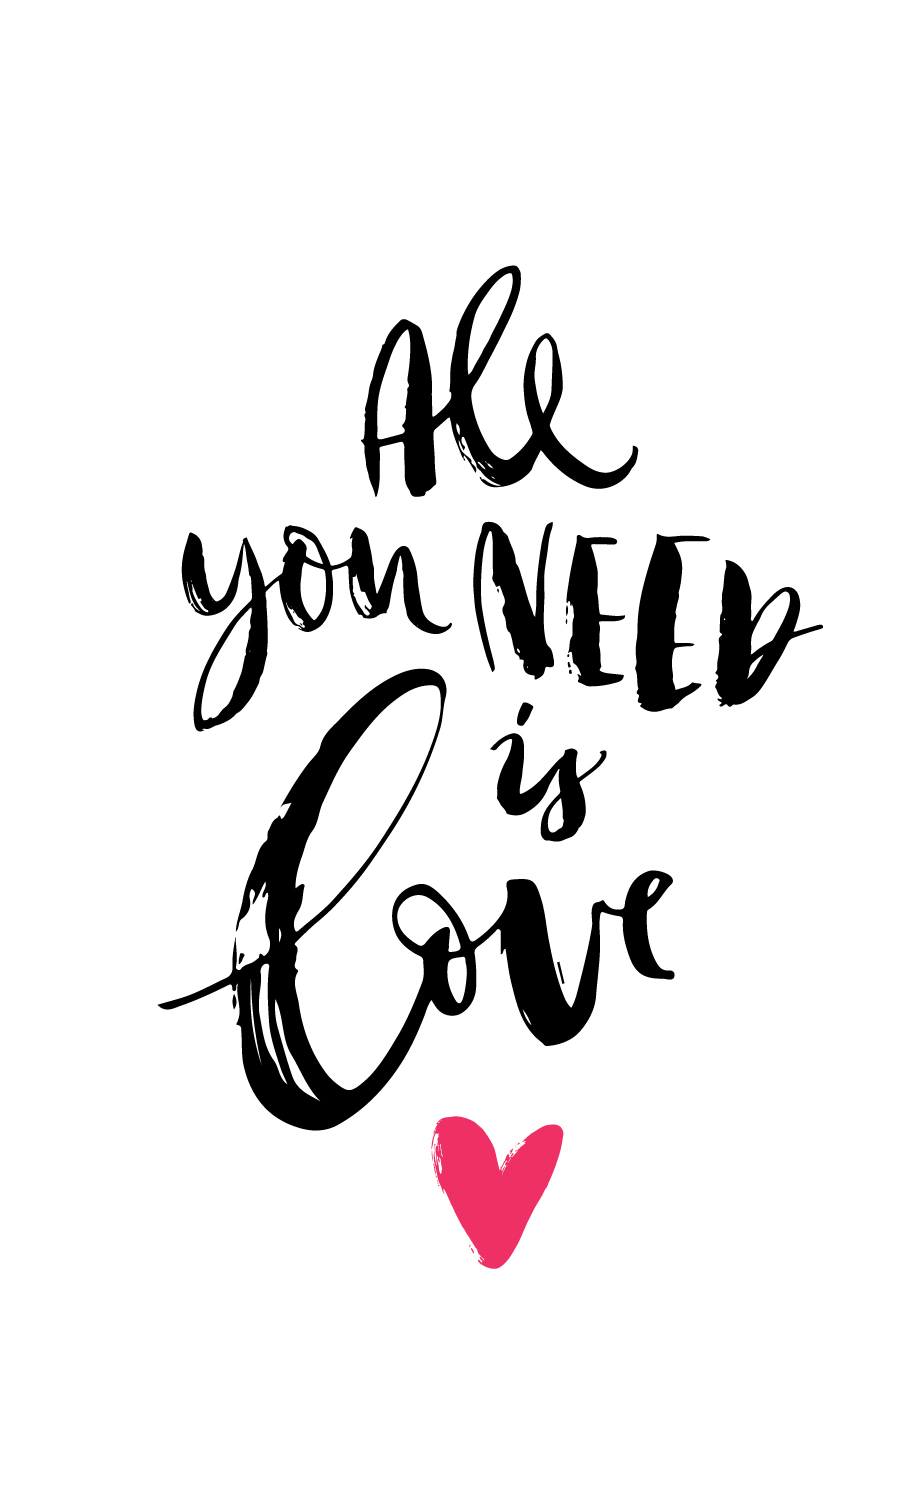 All You Need is Love Label.